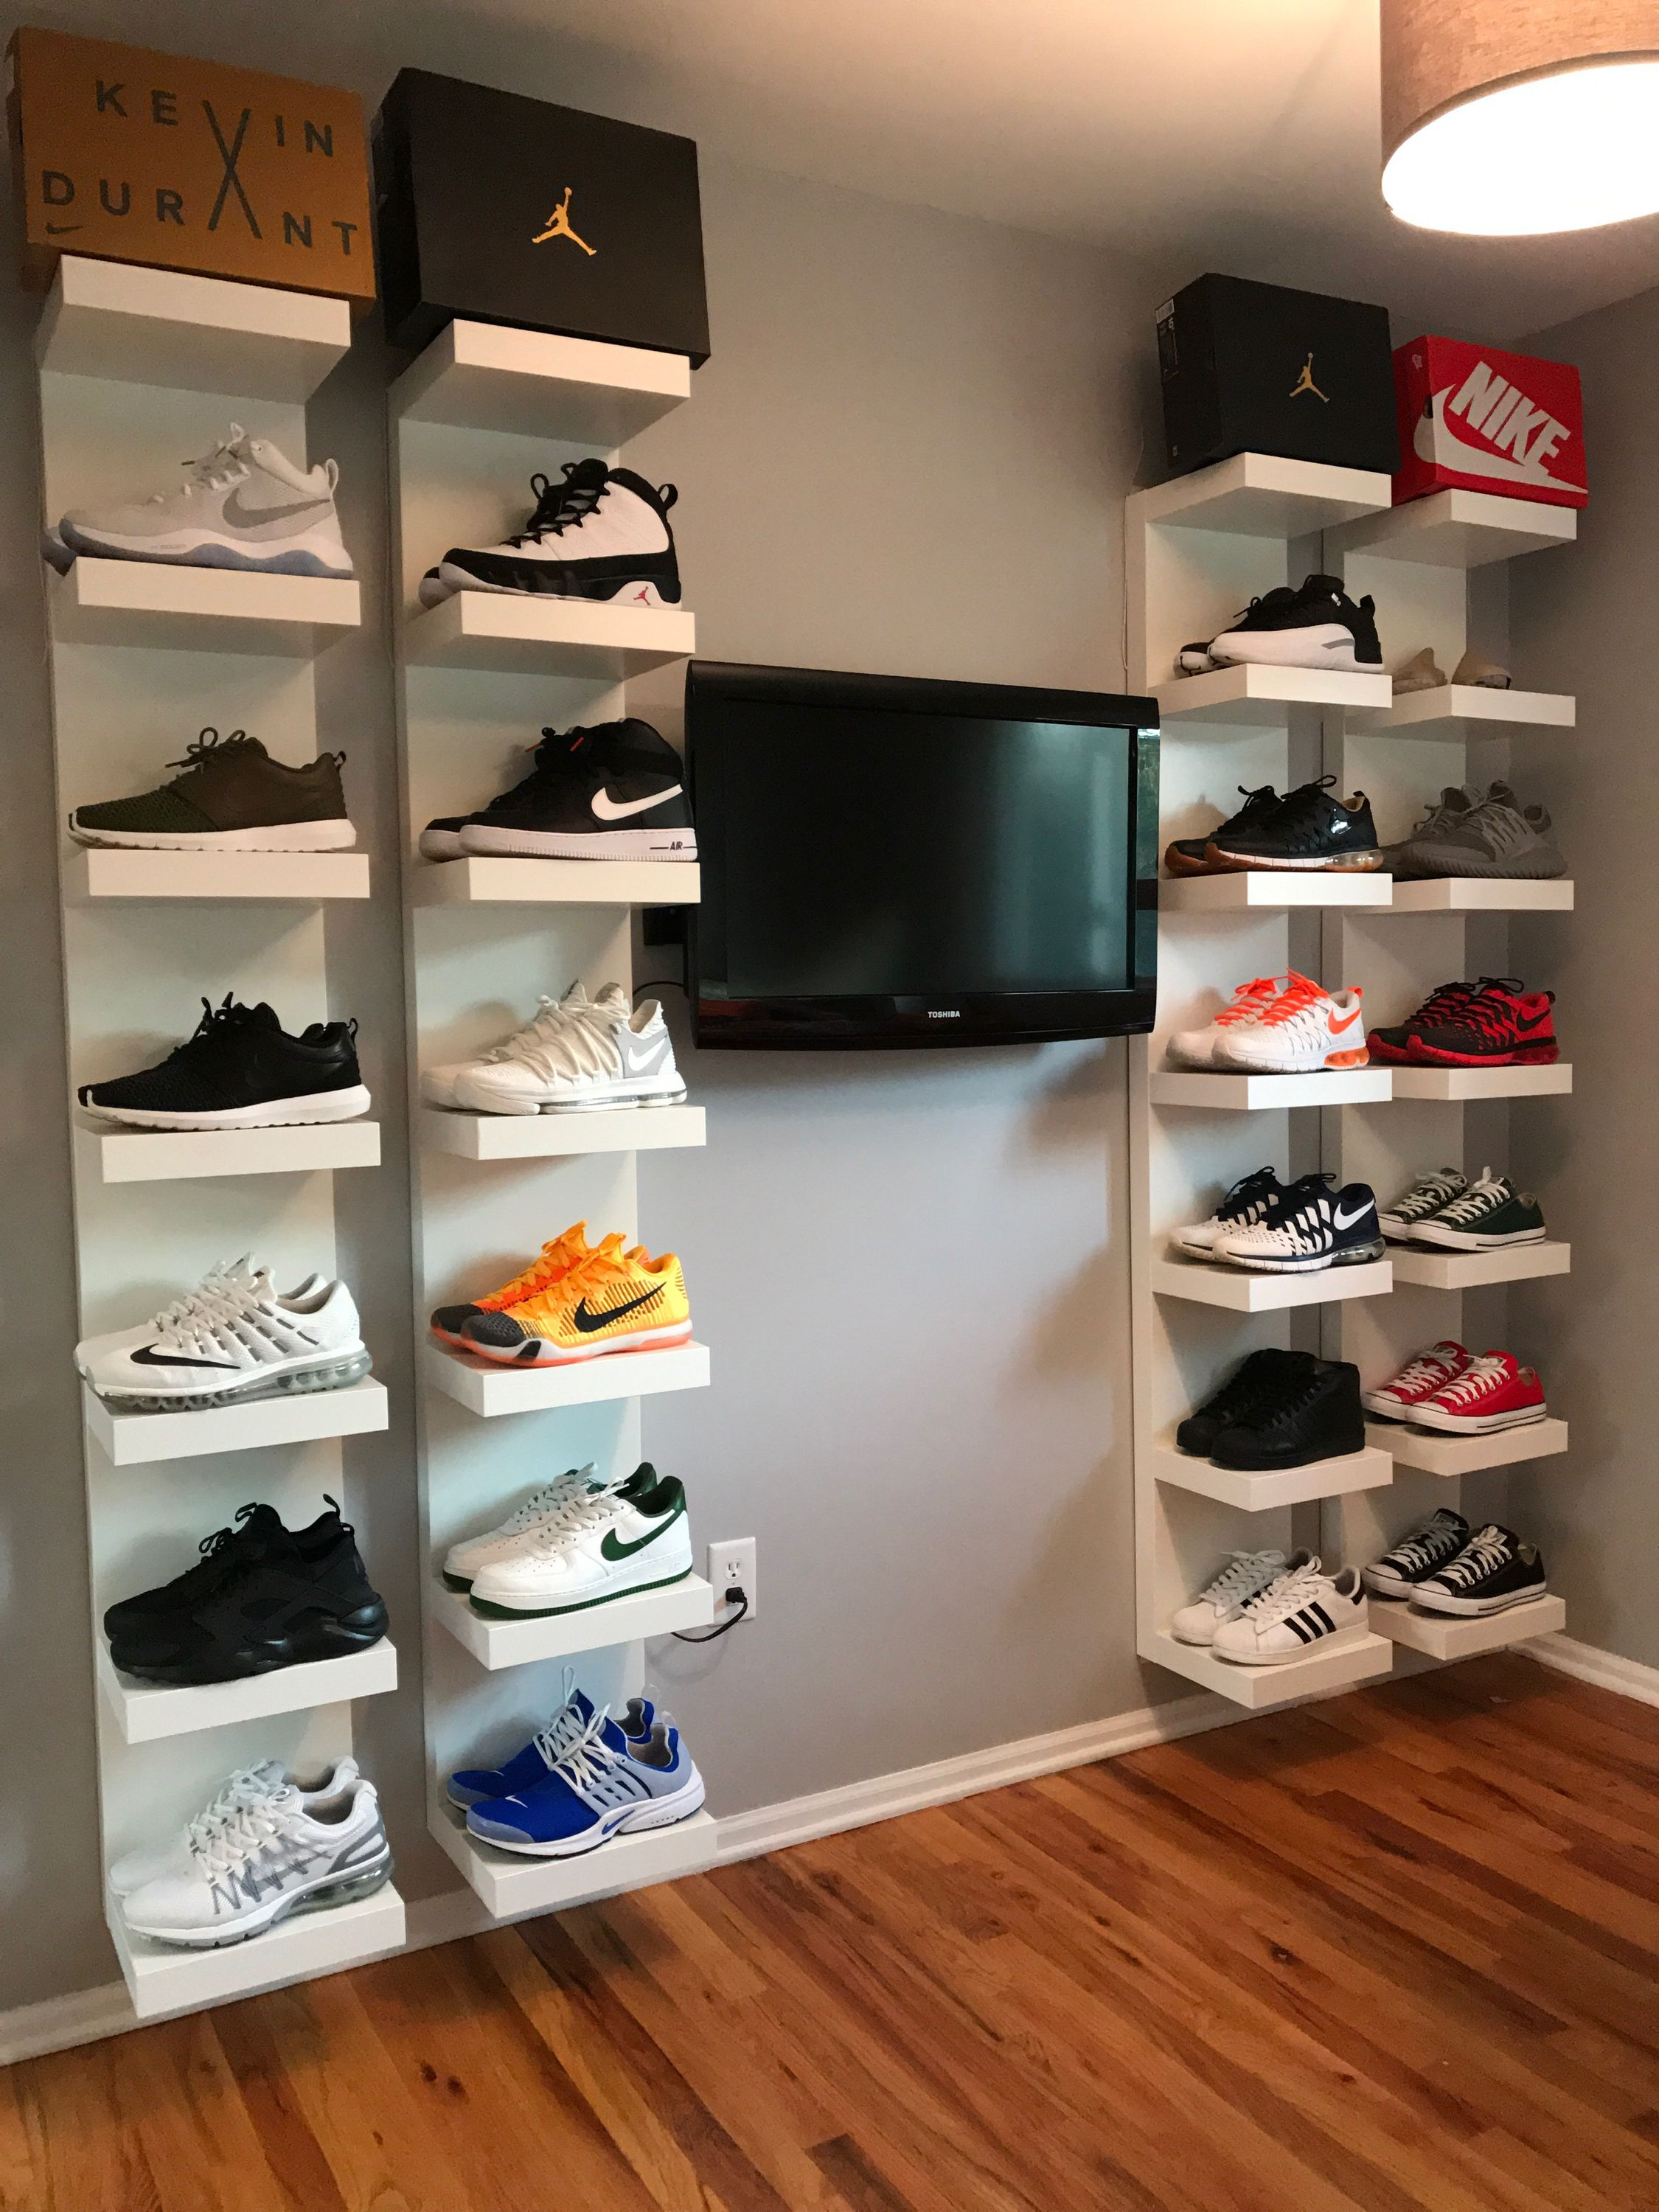 étagères Chaussures Ikea Diy Shoe Display Using Ikea Lack Shelves Chaussure